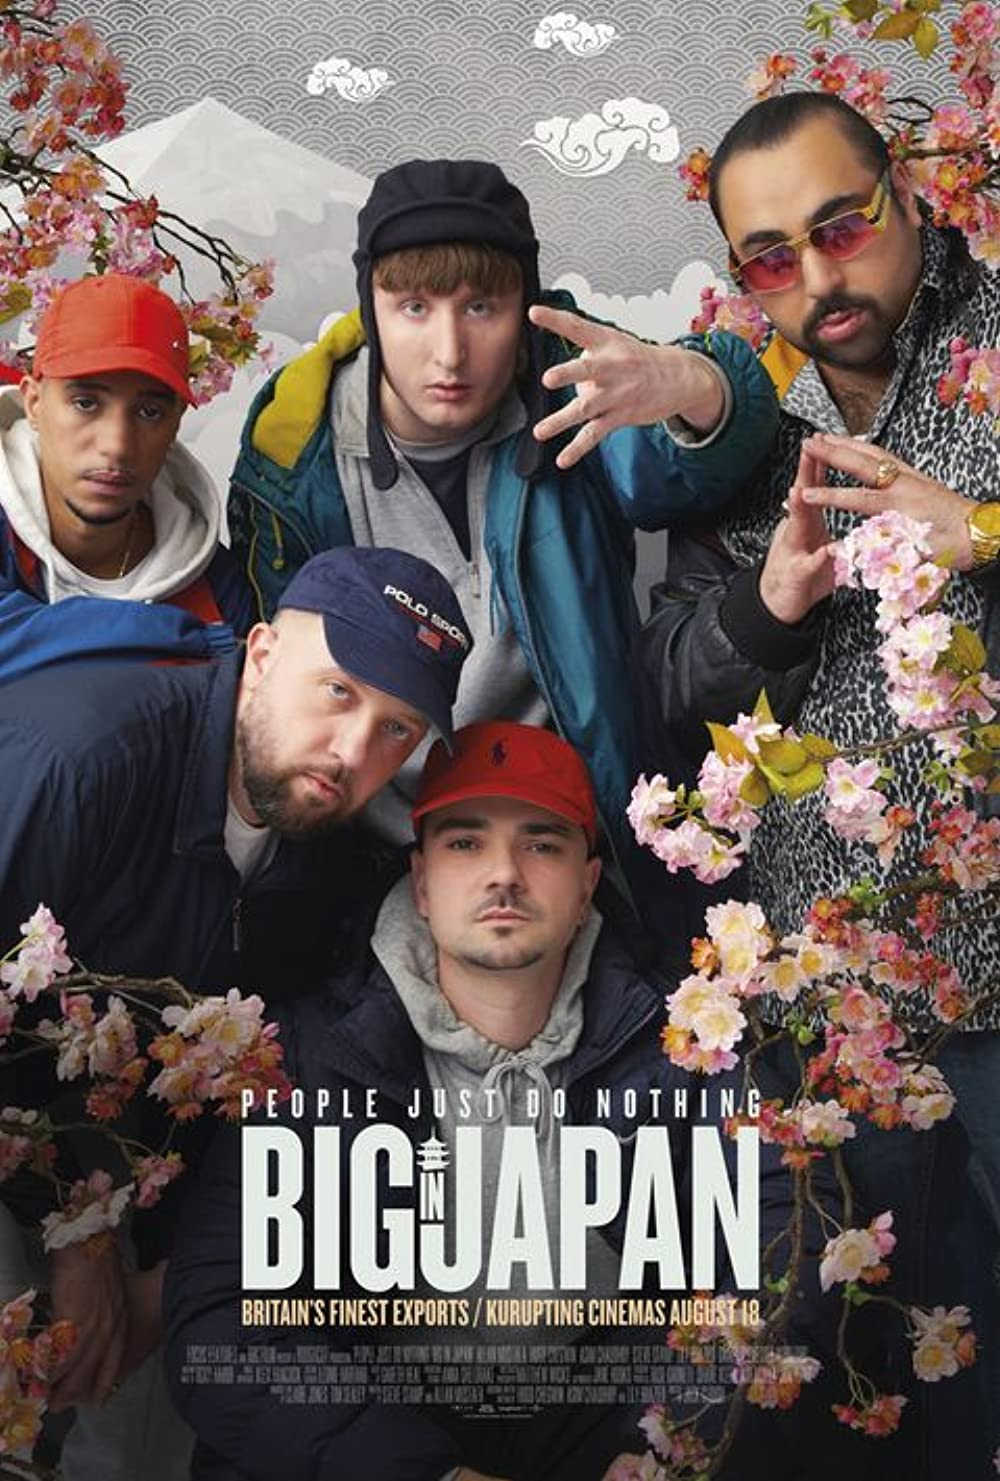 This is an image of the People Just Do Nothing: Big in Japan movie.